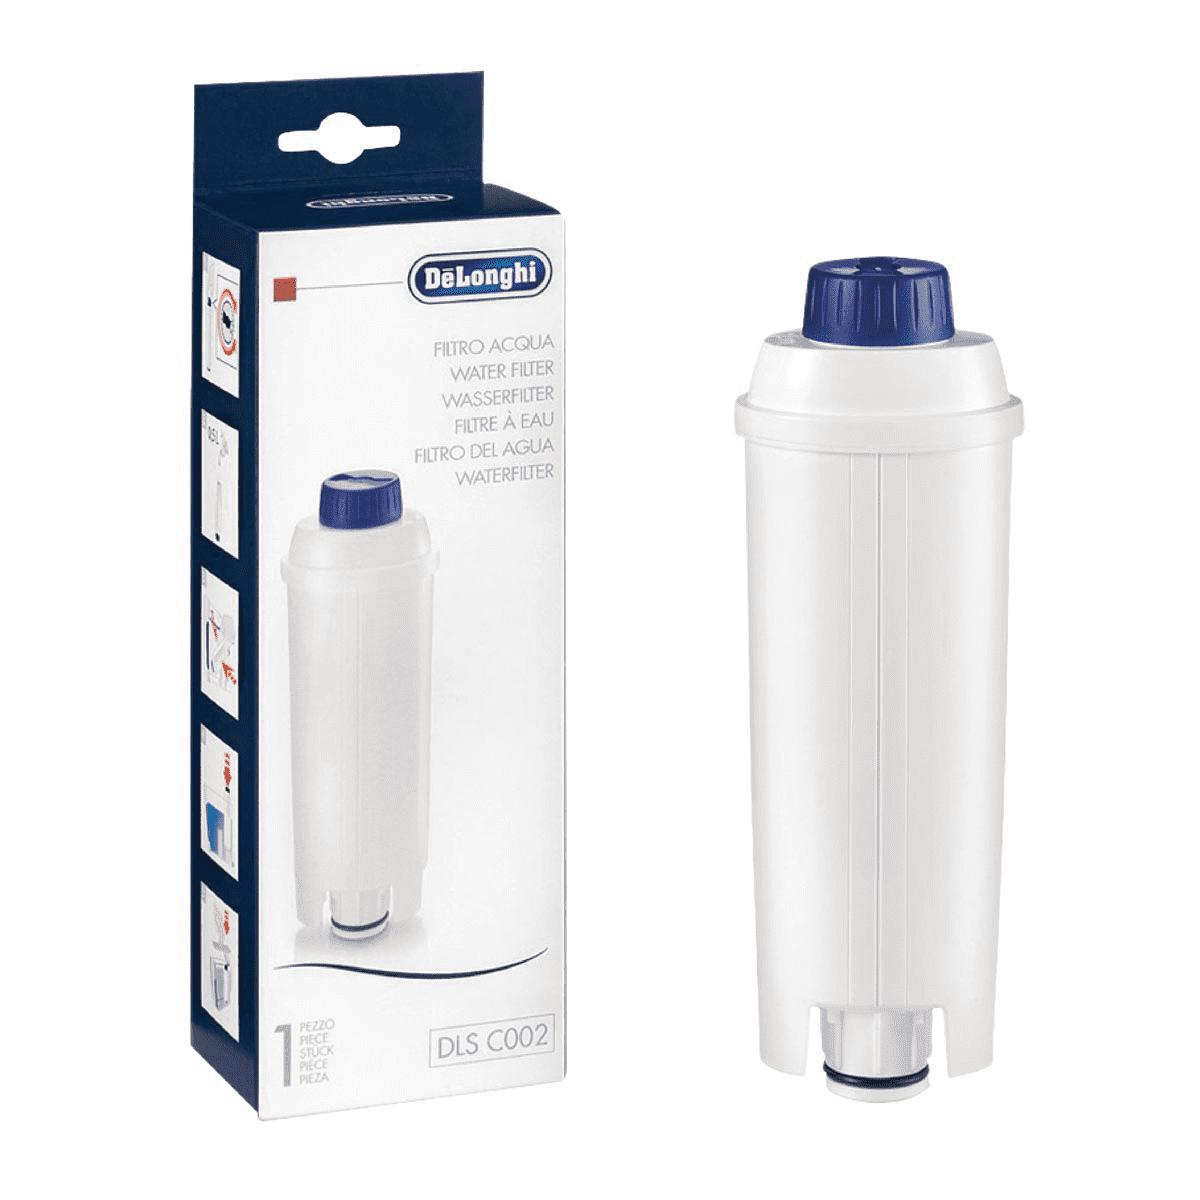 DeLonghi Water Filter for All Machines